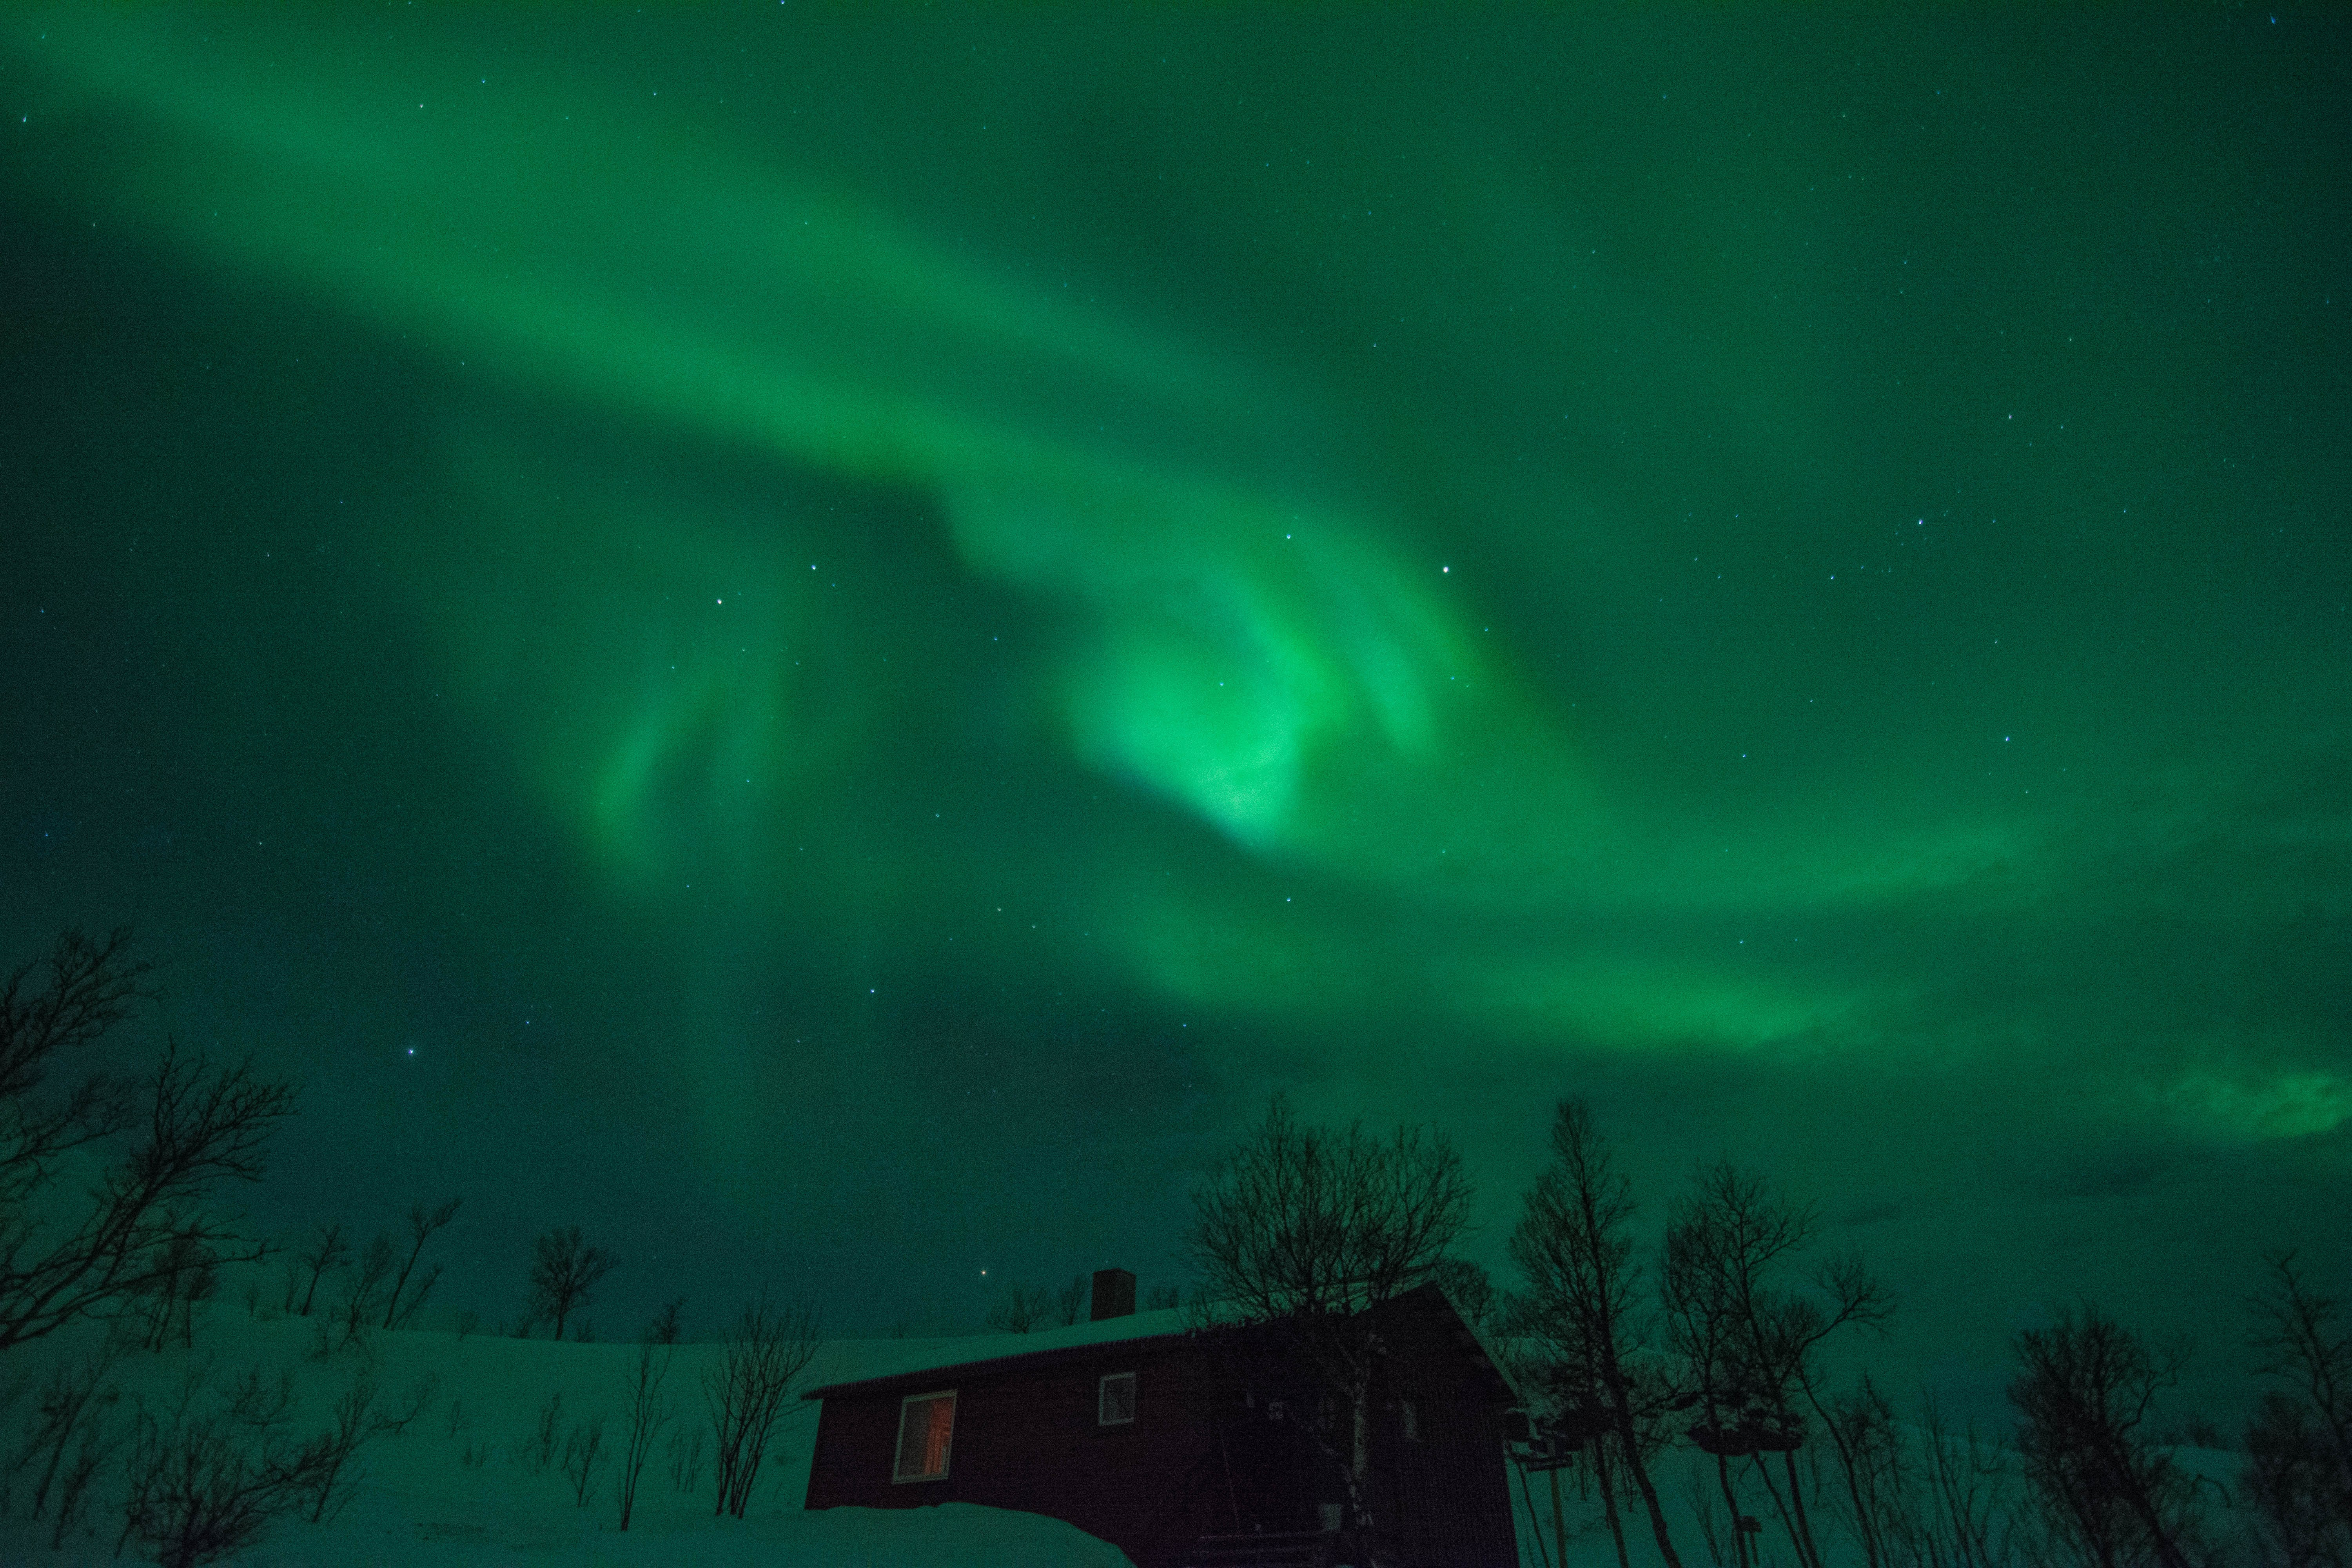 Aurora over a hikers cabin on the island of Senja.